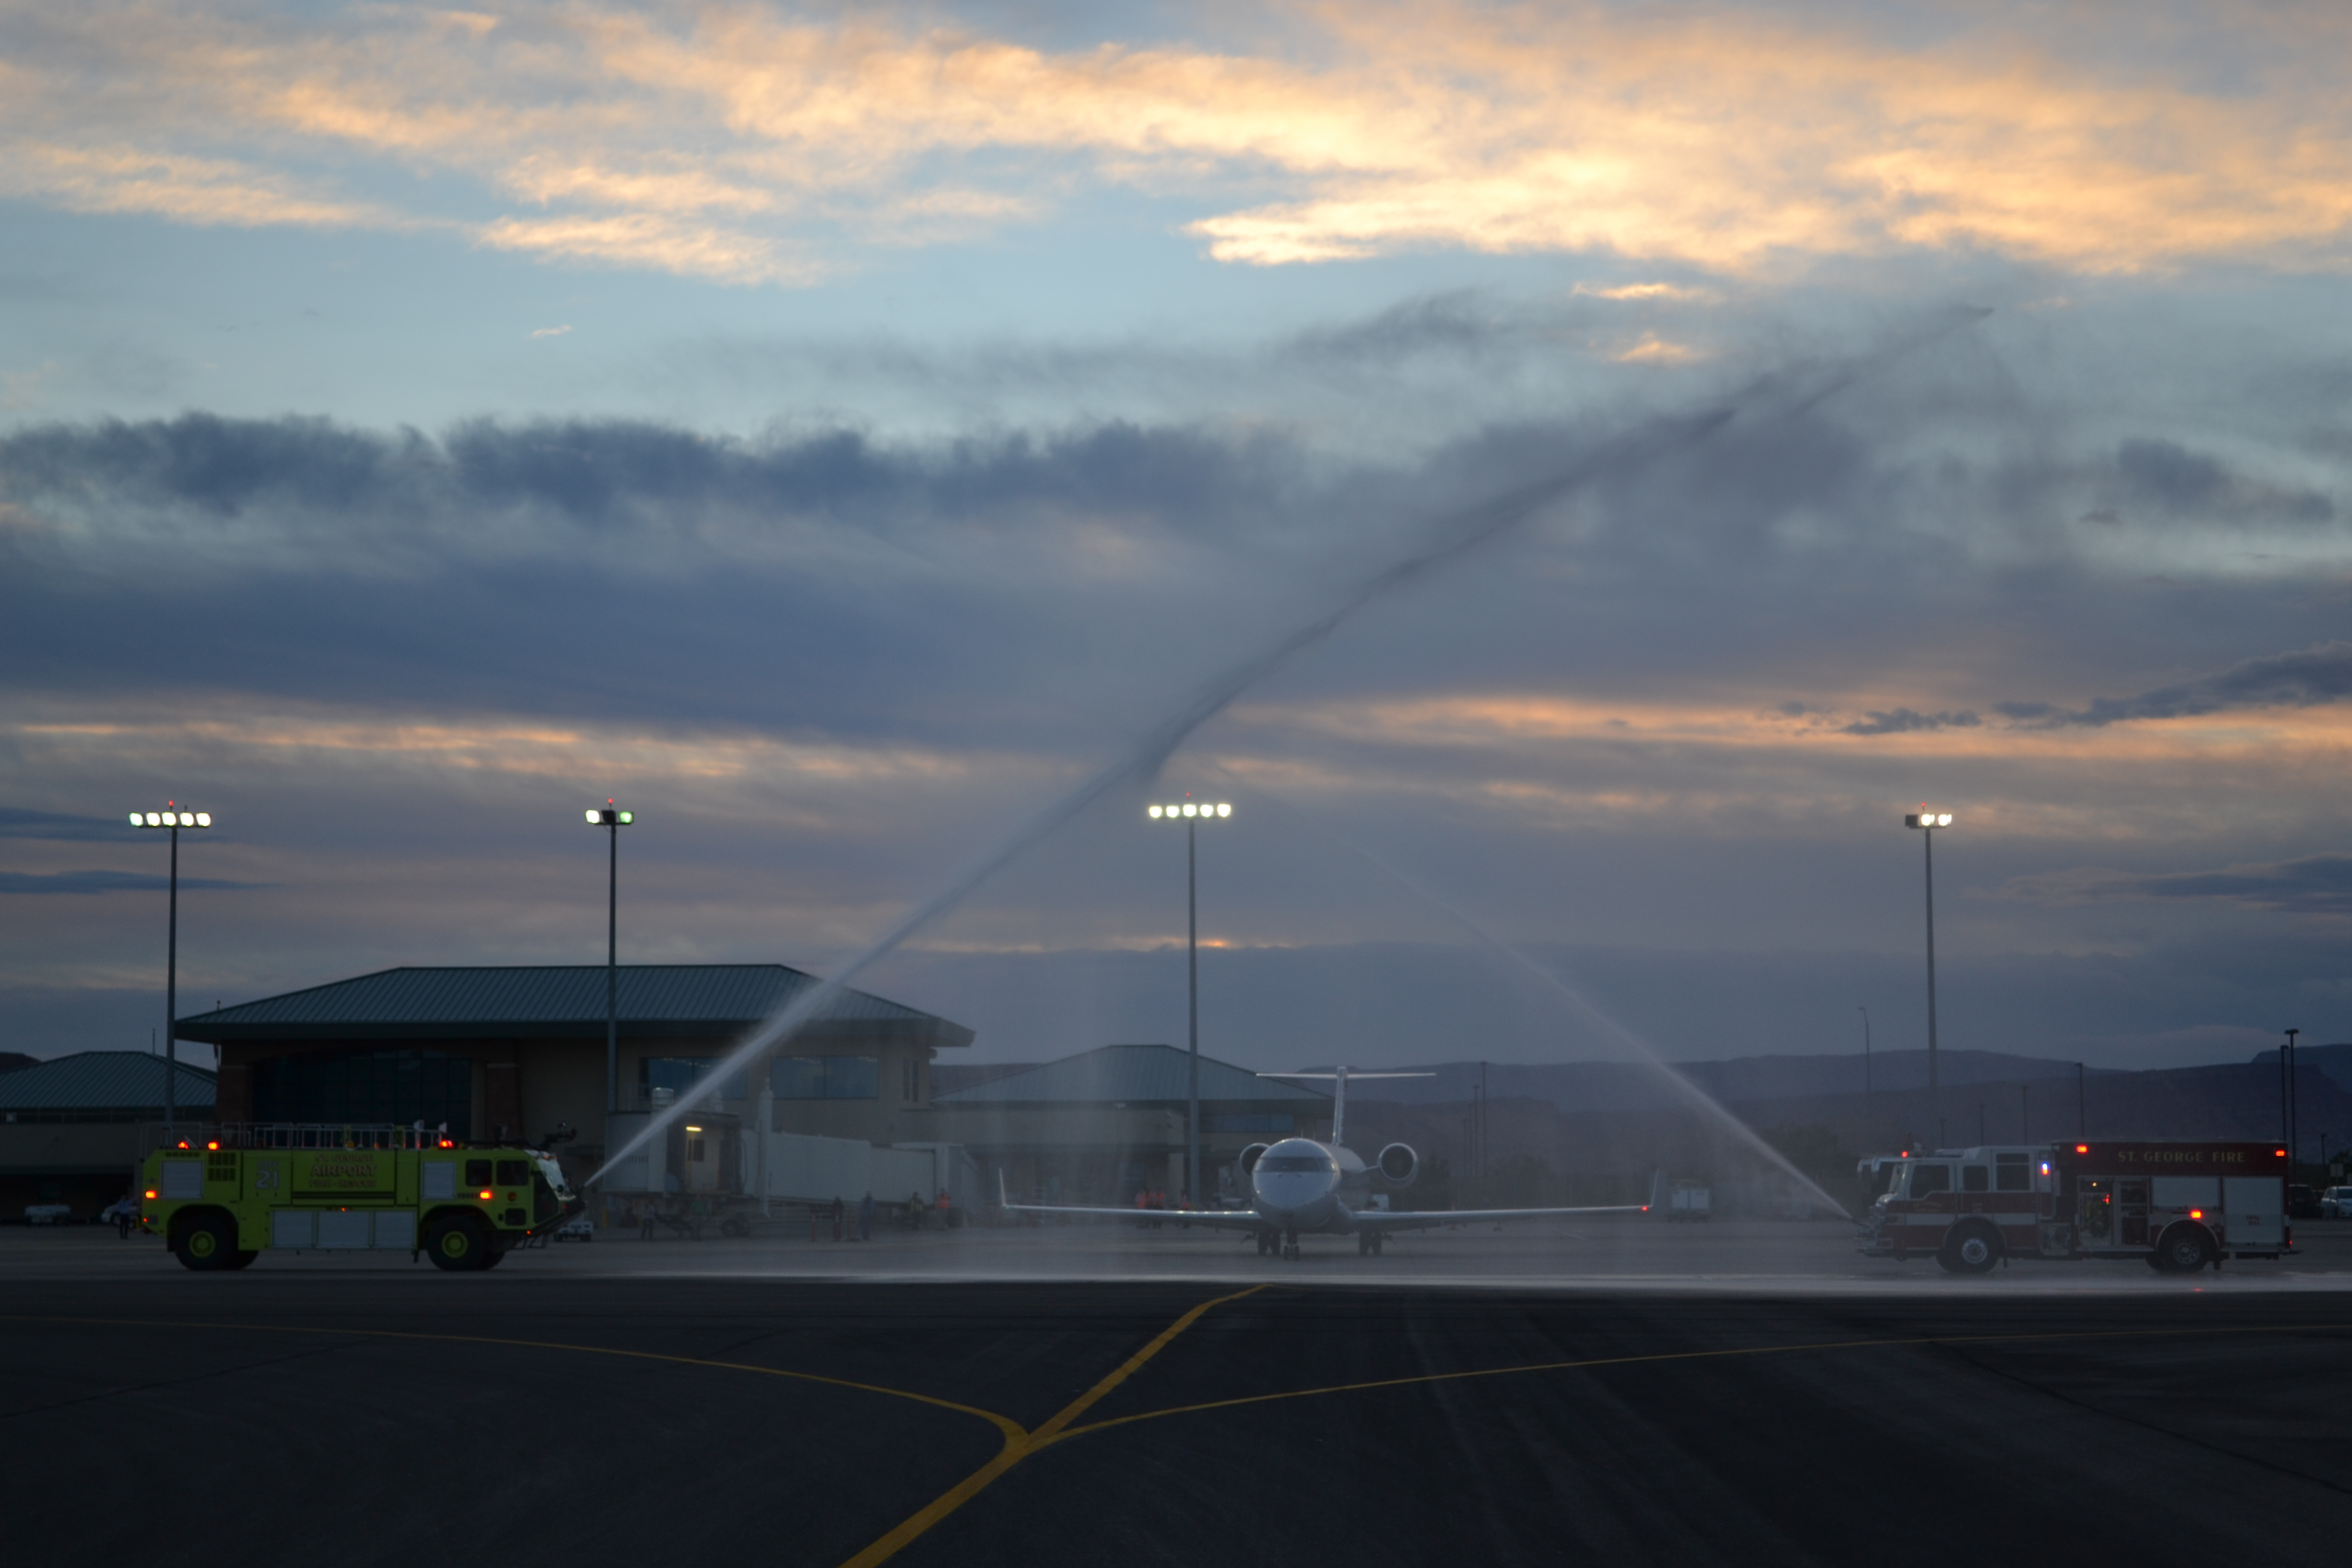 A Canadair Regional Jet is given a water cannon send-off by St. George Fire and St. George Airport engines before its inaugural flight to Phoenix, Arizona, St. George Regional Airport, Utah, Nov. 4, 2016 | Photo by Joseph Witham, St. George News